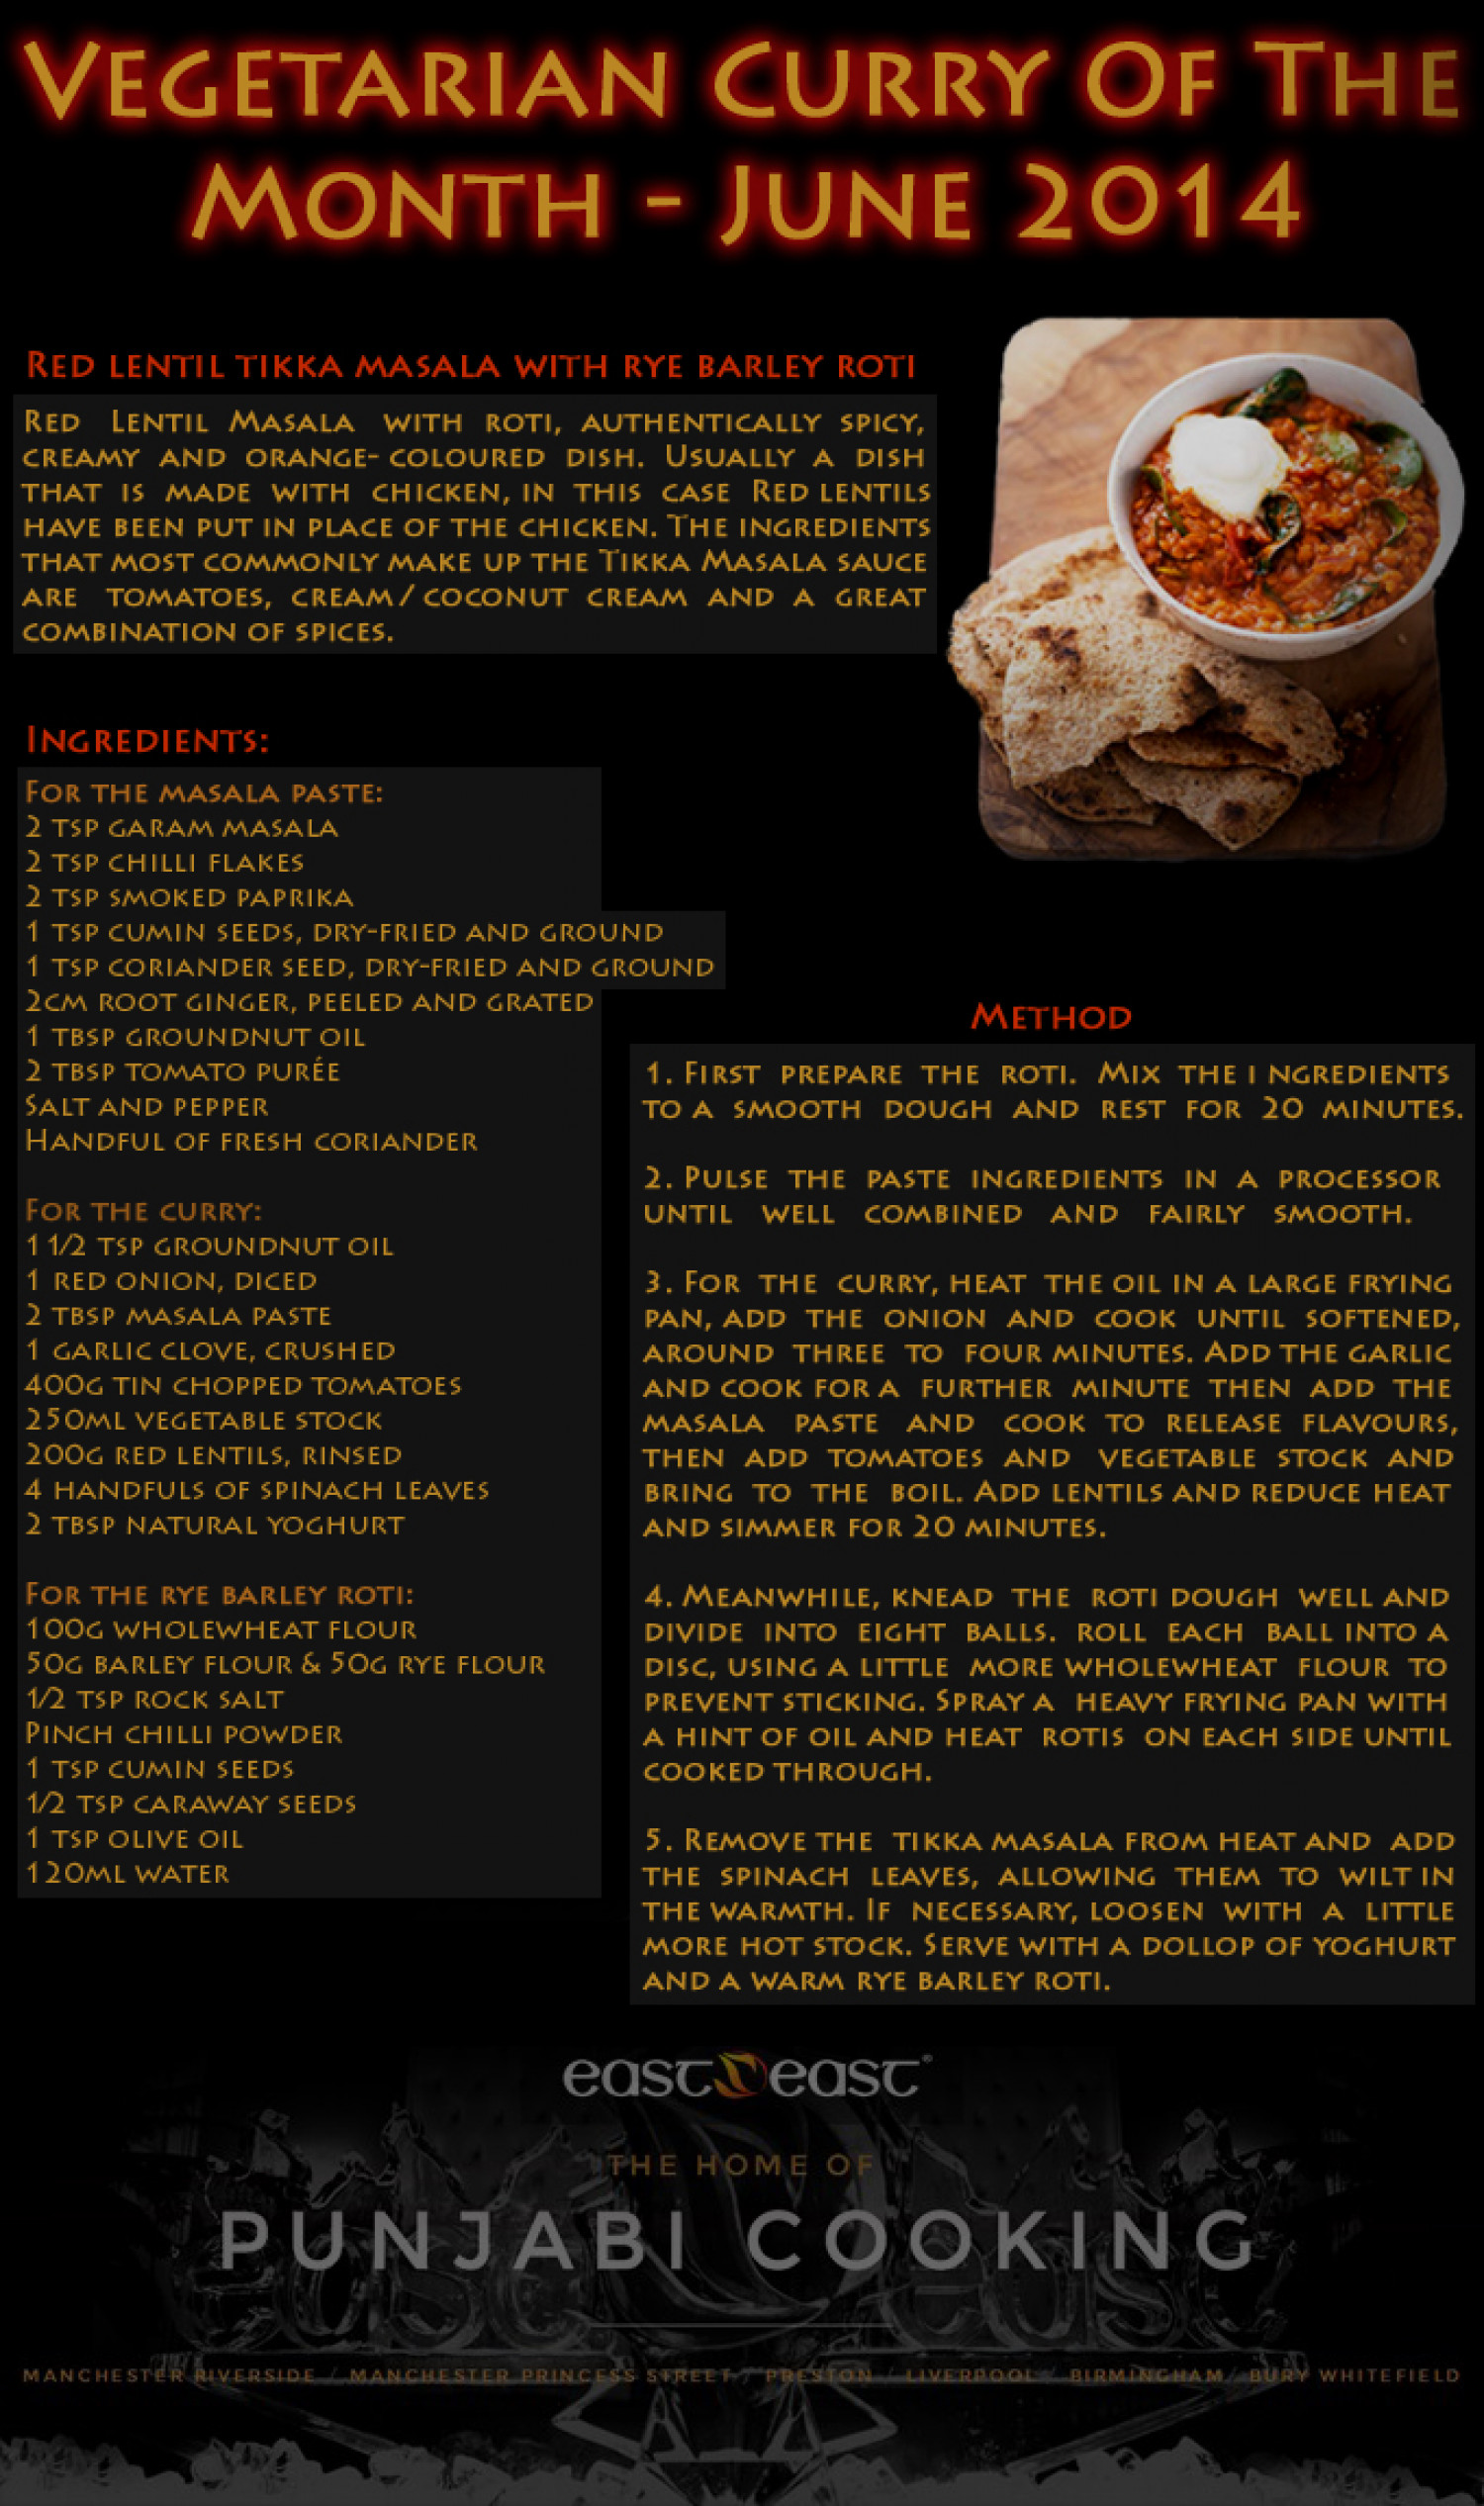 Vegetarian Curry Of The Month - June 2014 Infographic